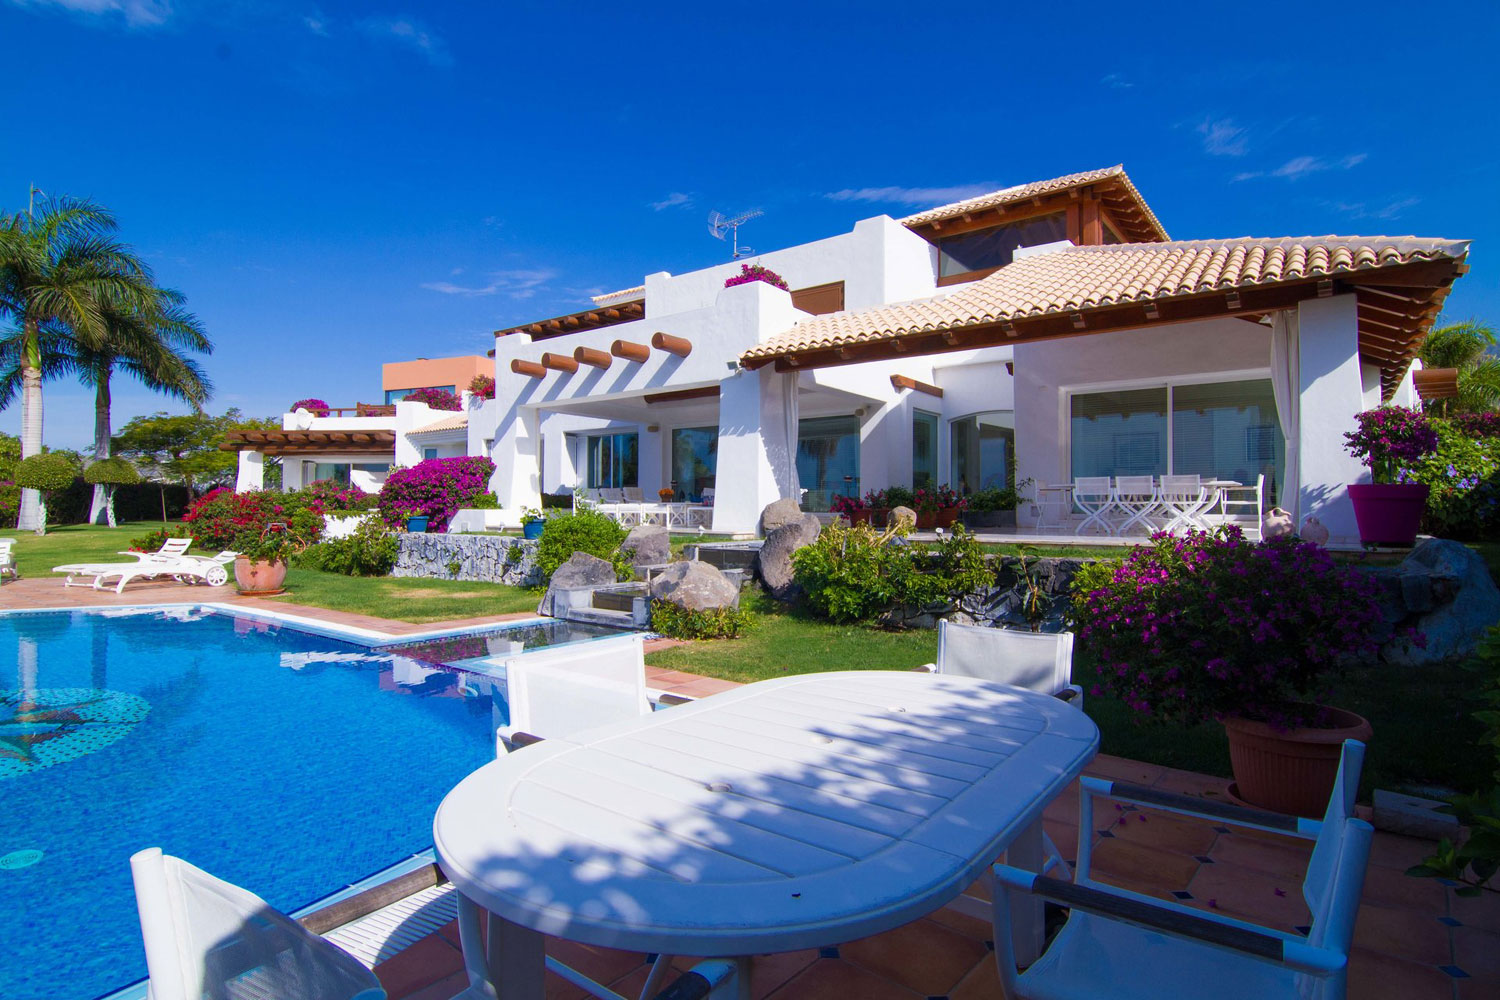 The modern residence is surrounded by beautiful gardens with an infinity pool overlooking the countryside, the sea, and the neighboring island of La Gomera. It is close to many local amenities and the delightful fishing village of La Caleta.